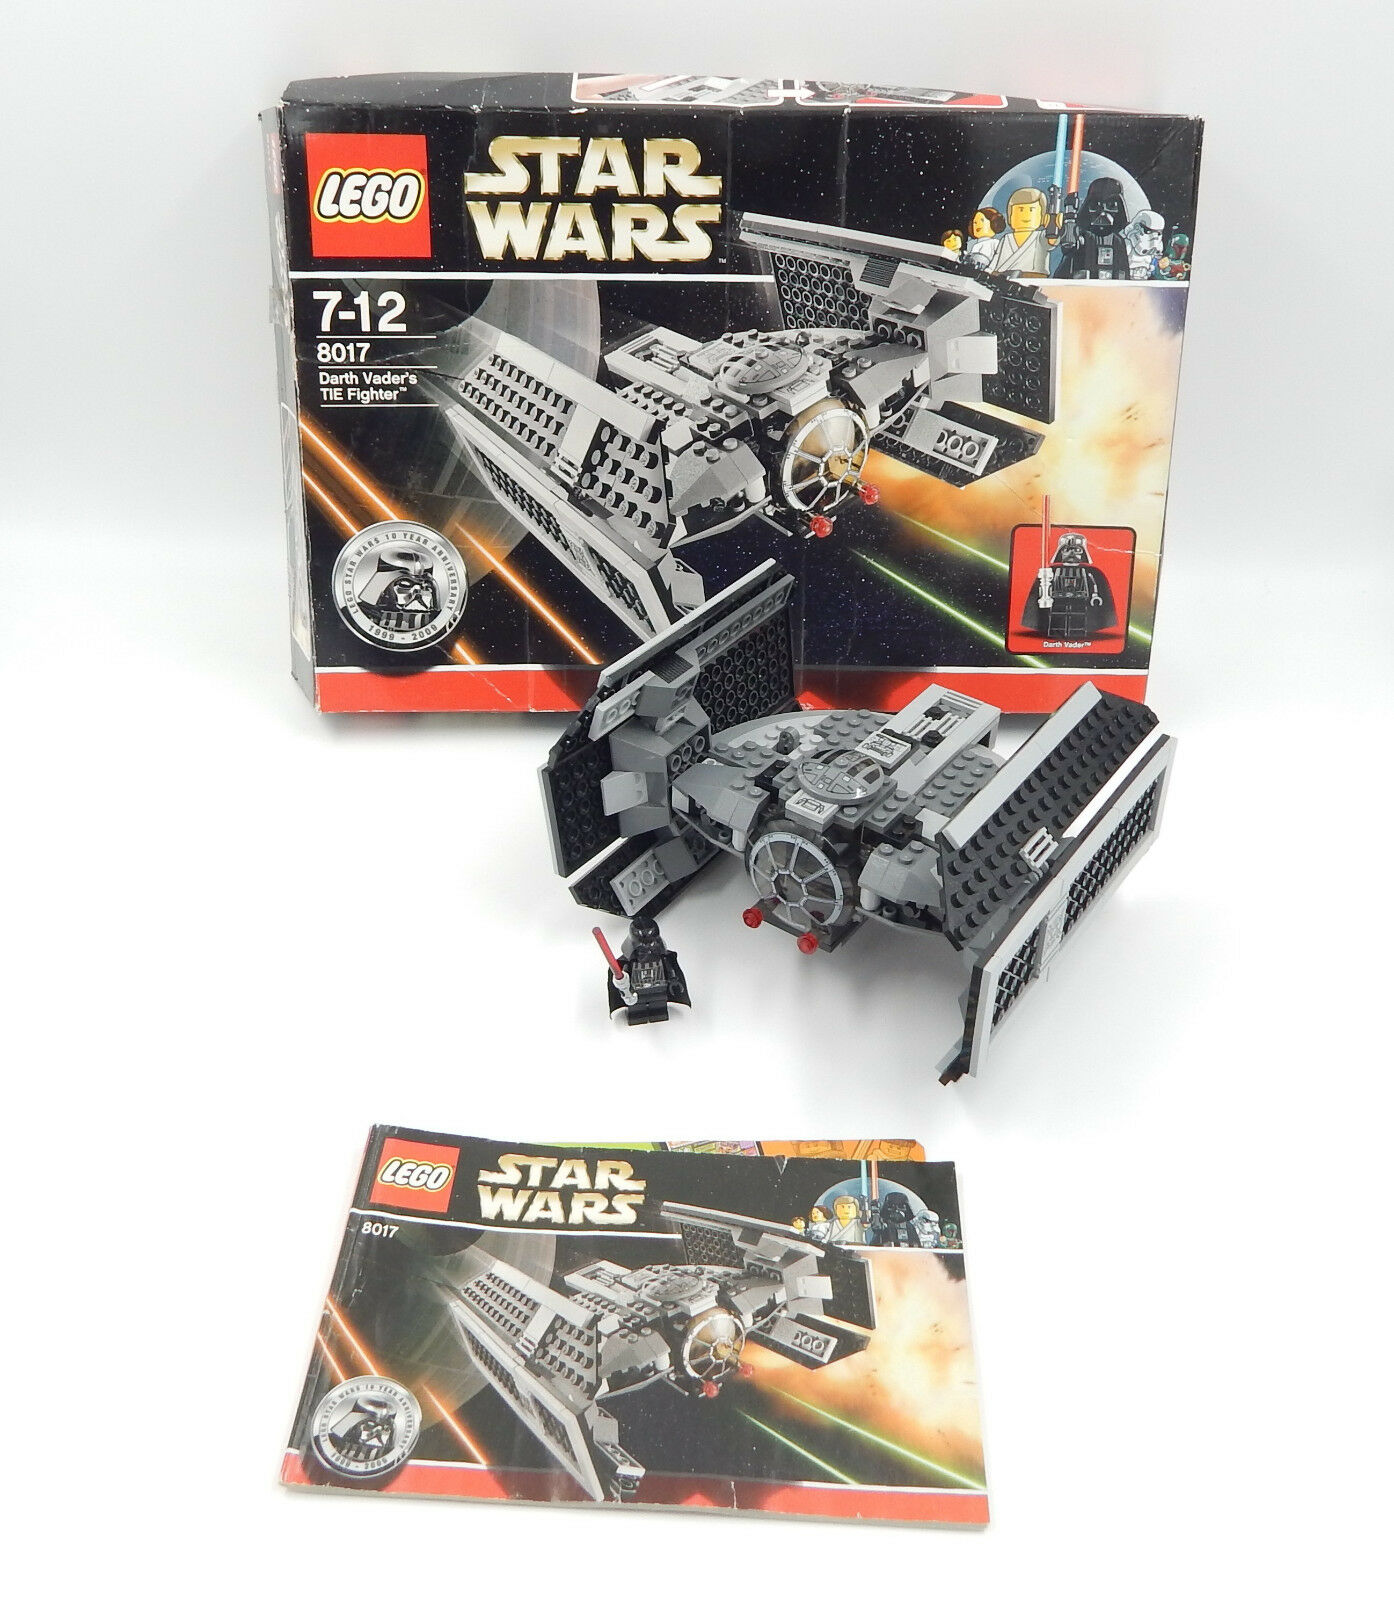 LEGO STAR WARS 8017 Dark vador's Tie Fighter-D' OCCASION